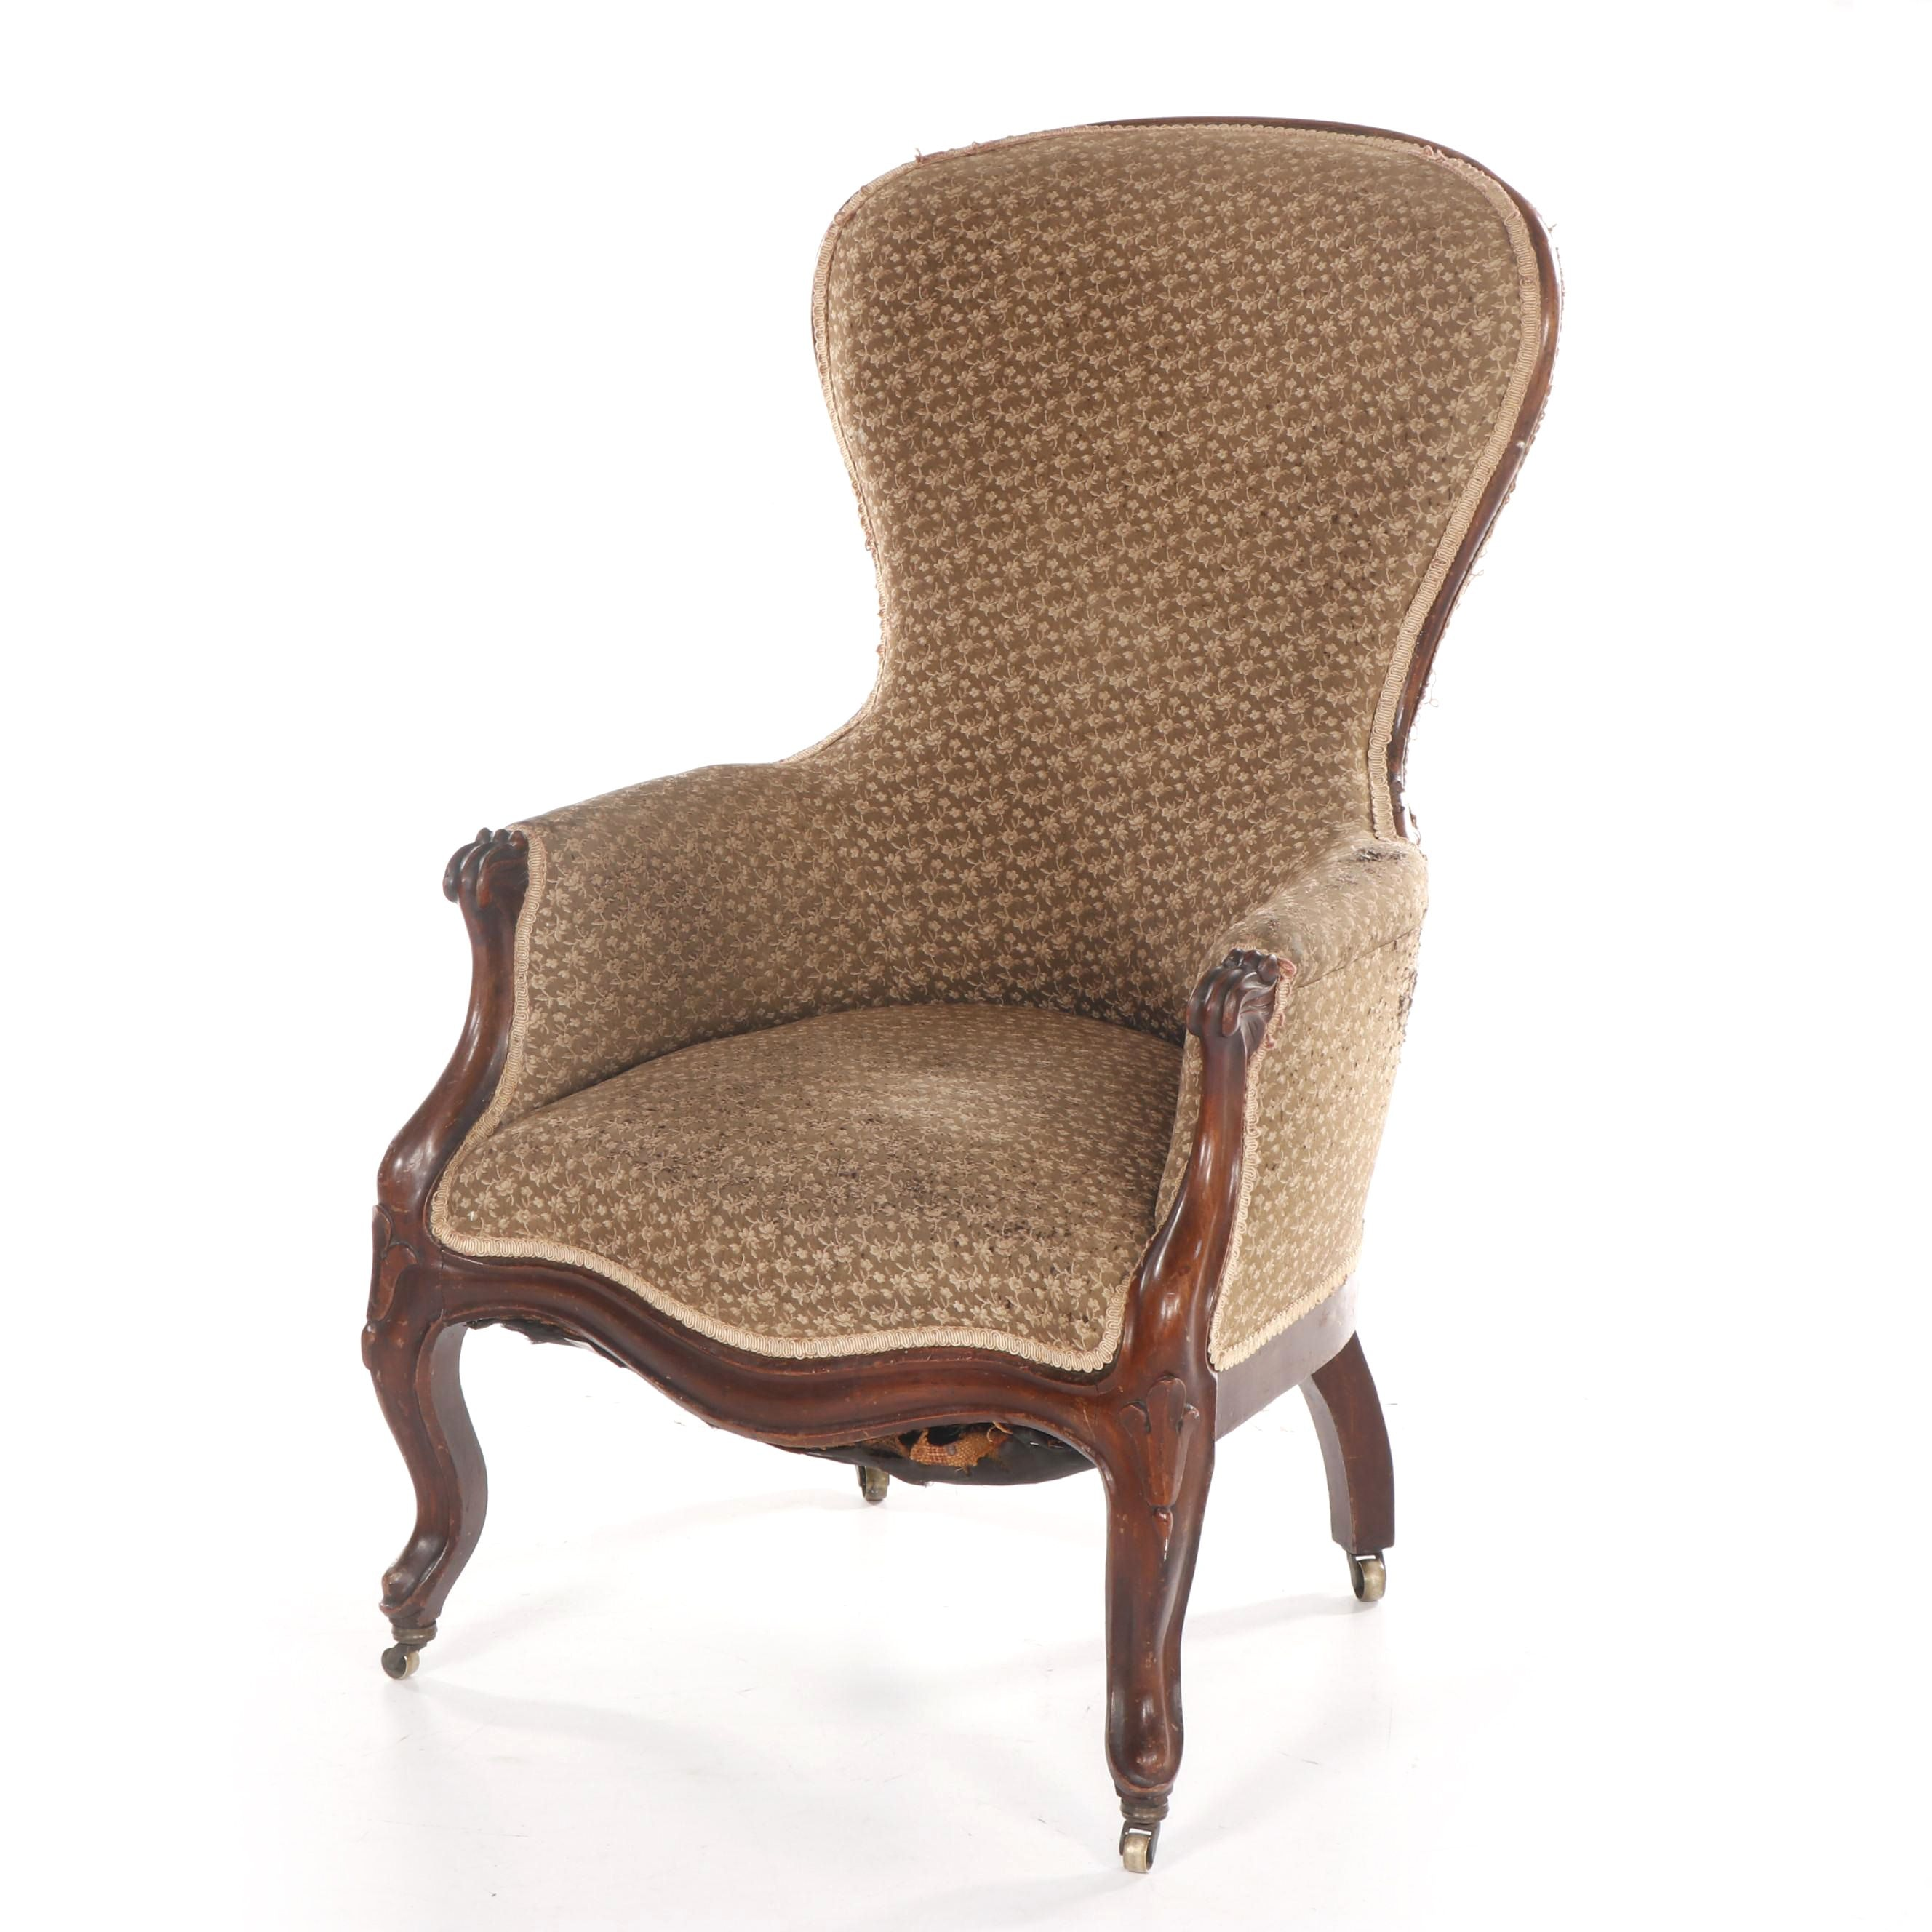 French Provincial Mahogany Upholstered Armchair